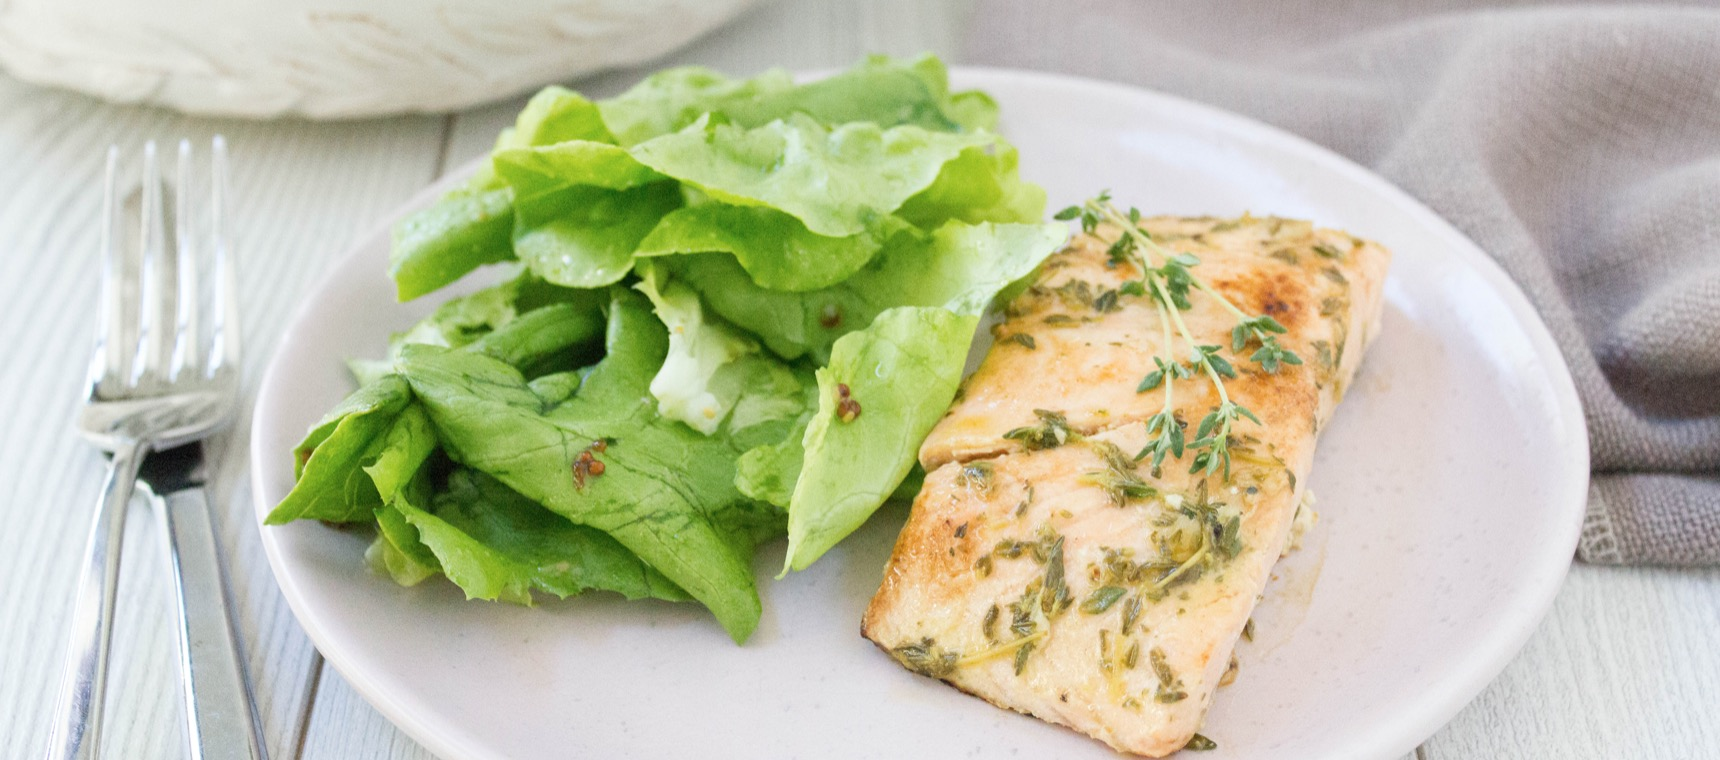 Grilled Garlic and Ginger Salmon with Summer Green Salad